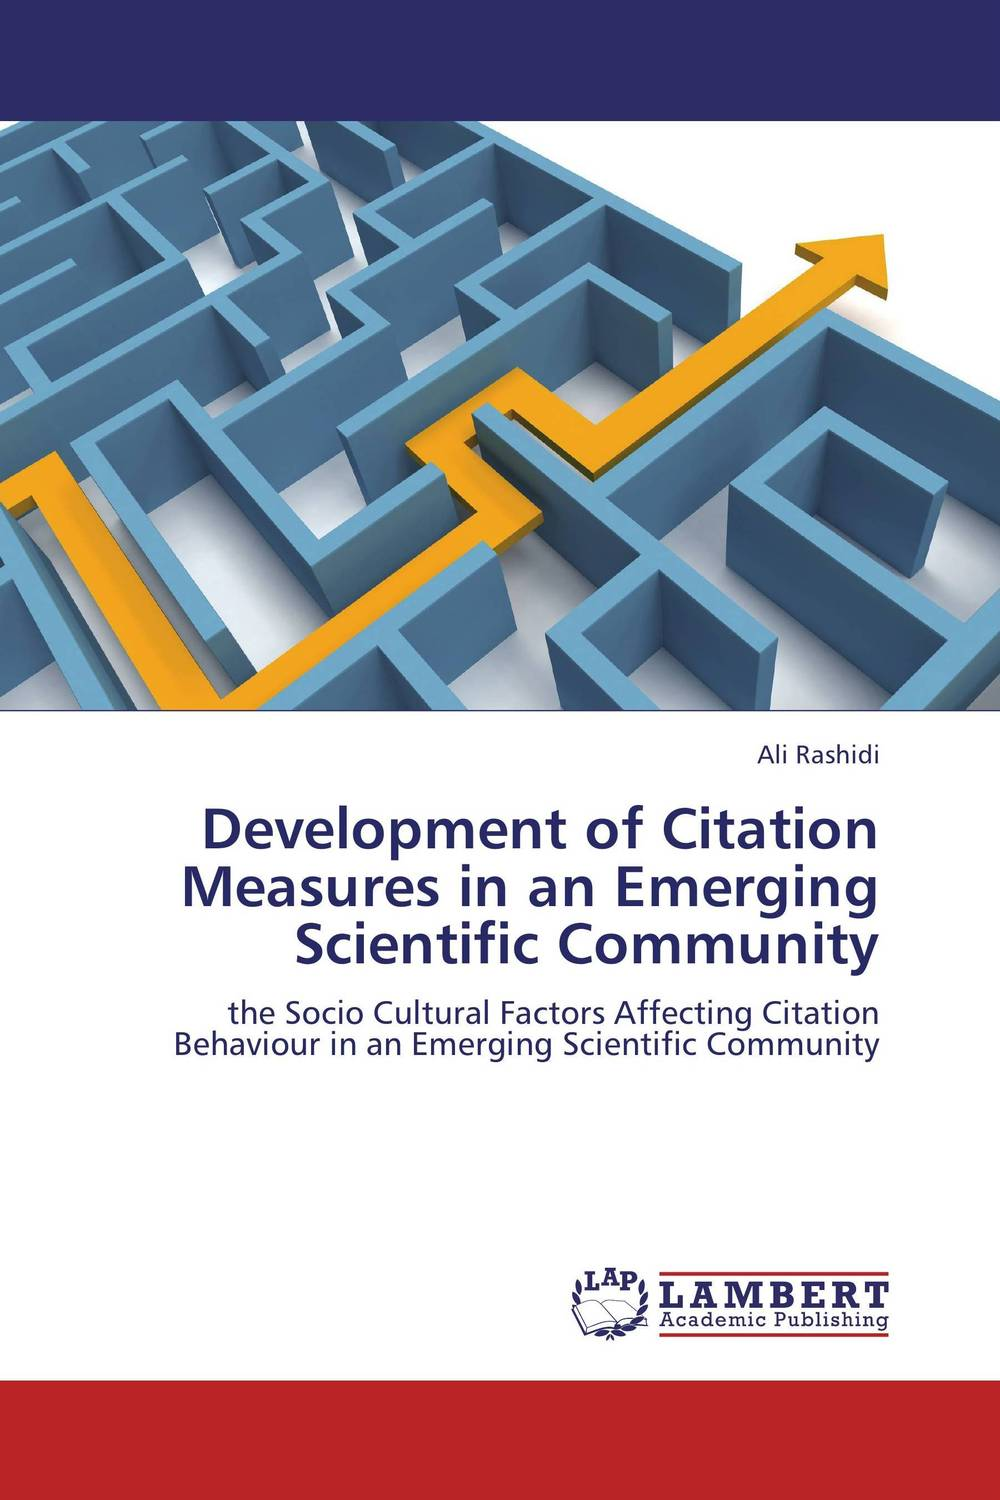 Development of Citation Measures in an Emerging Scientific Community rakesh kumar emerging role of civil society in development of botswana